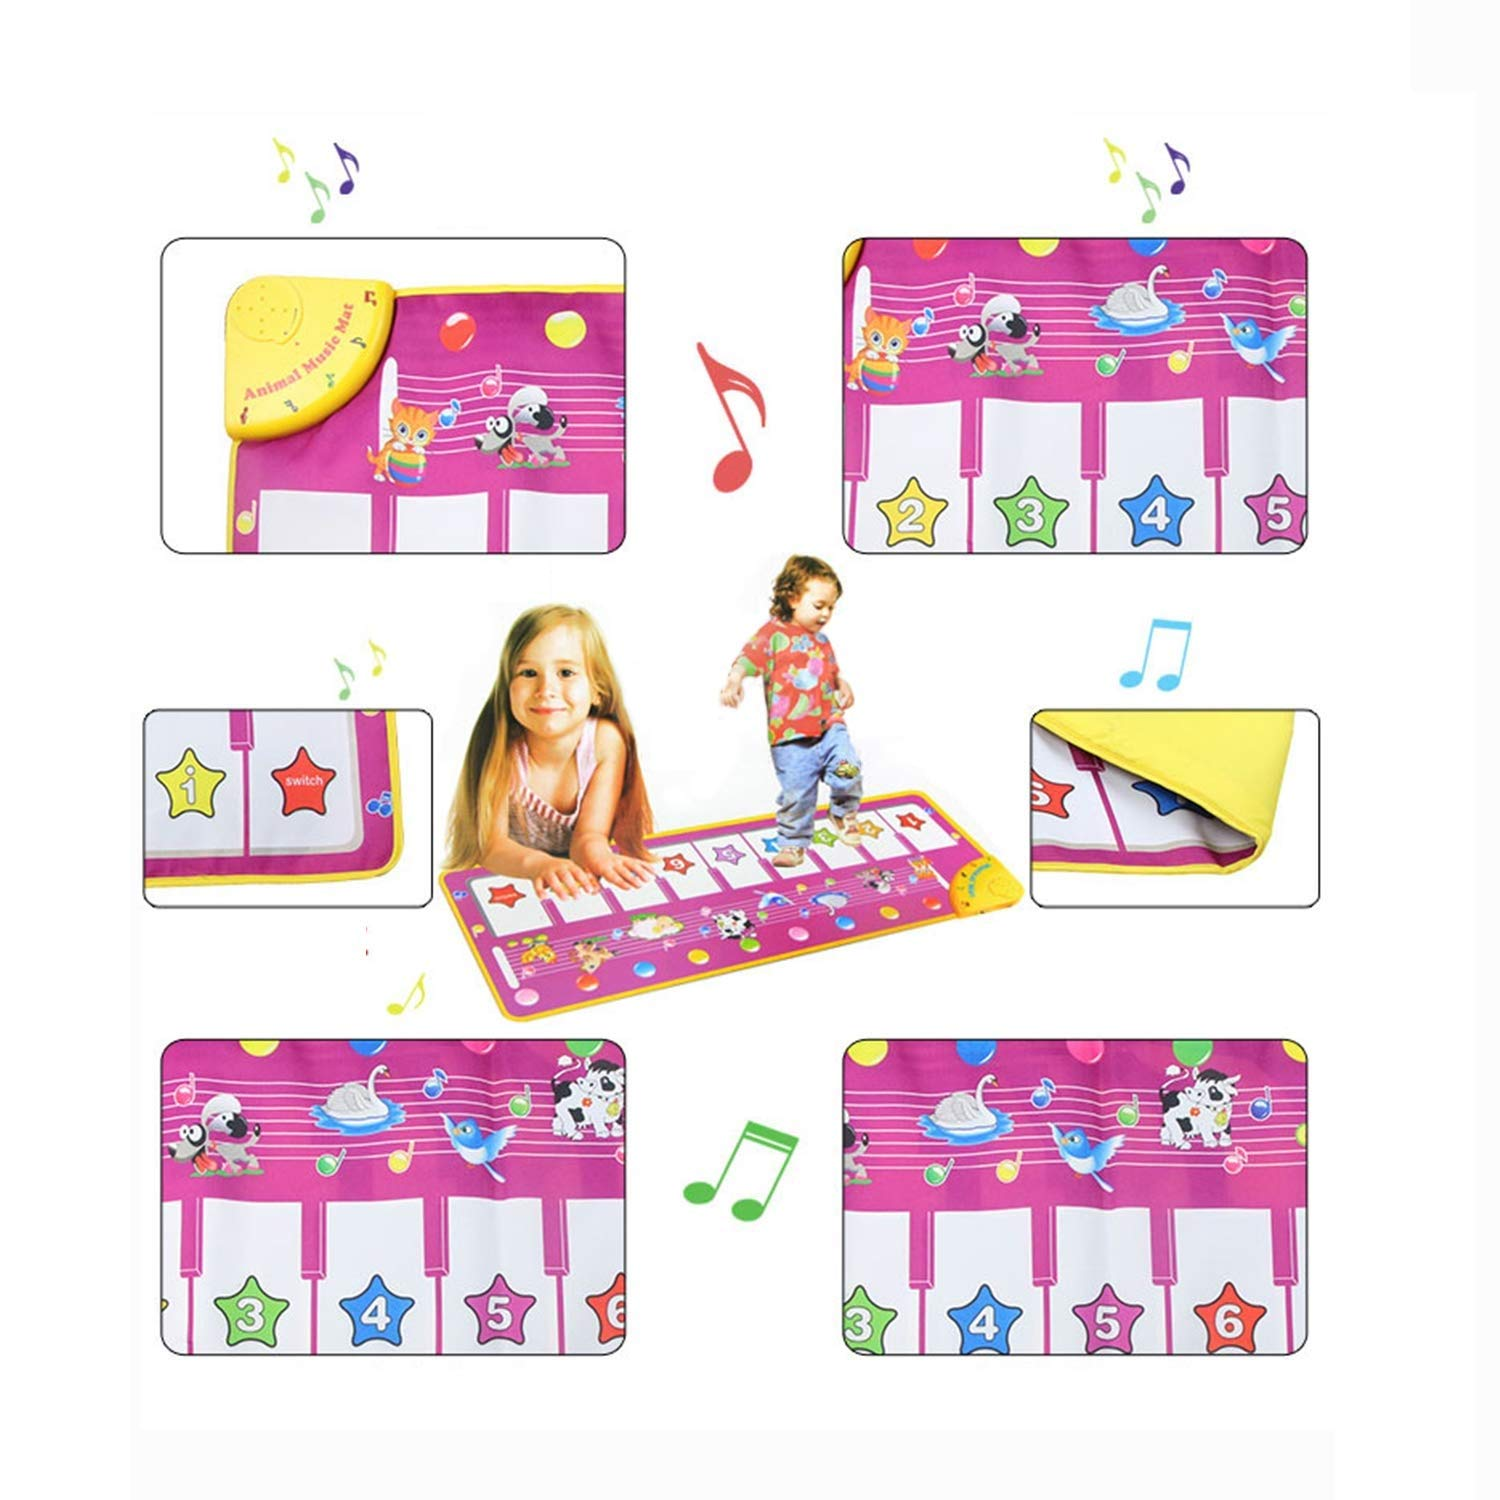 Creative Piano Game Mat, Multi-Function Music Singing Gym Carpet Mat, Children's Entertainment Mat (100x36 cm) by Sunny (Image #5)